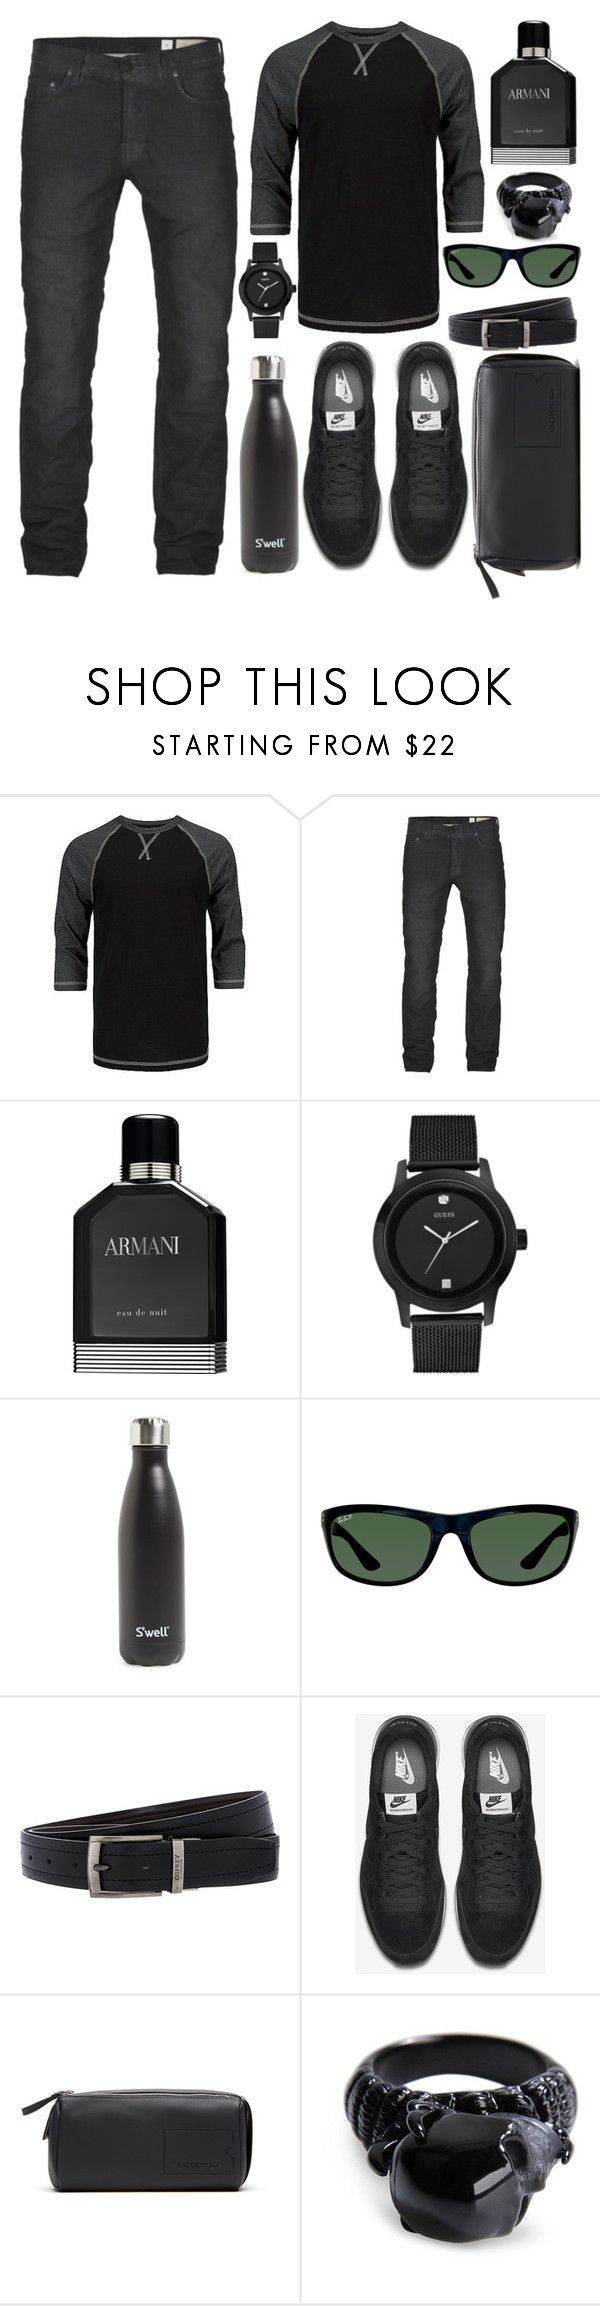 """""""Men's Black Out"""" by cindy-for-fashion ❤ liked on Polyvore featuring BKE Vintage, AllSaints, Giorgio Armani, GUESS, S'well, Ray-Ban, Osprey, NIKE, Lacoste and Alexander McQueen"""